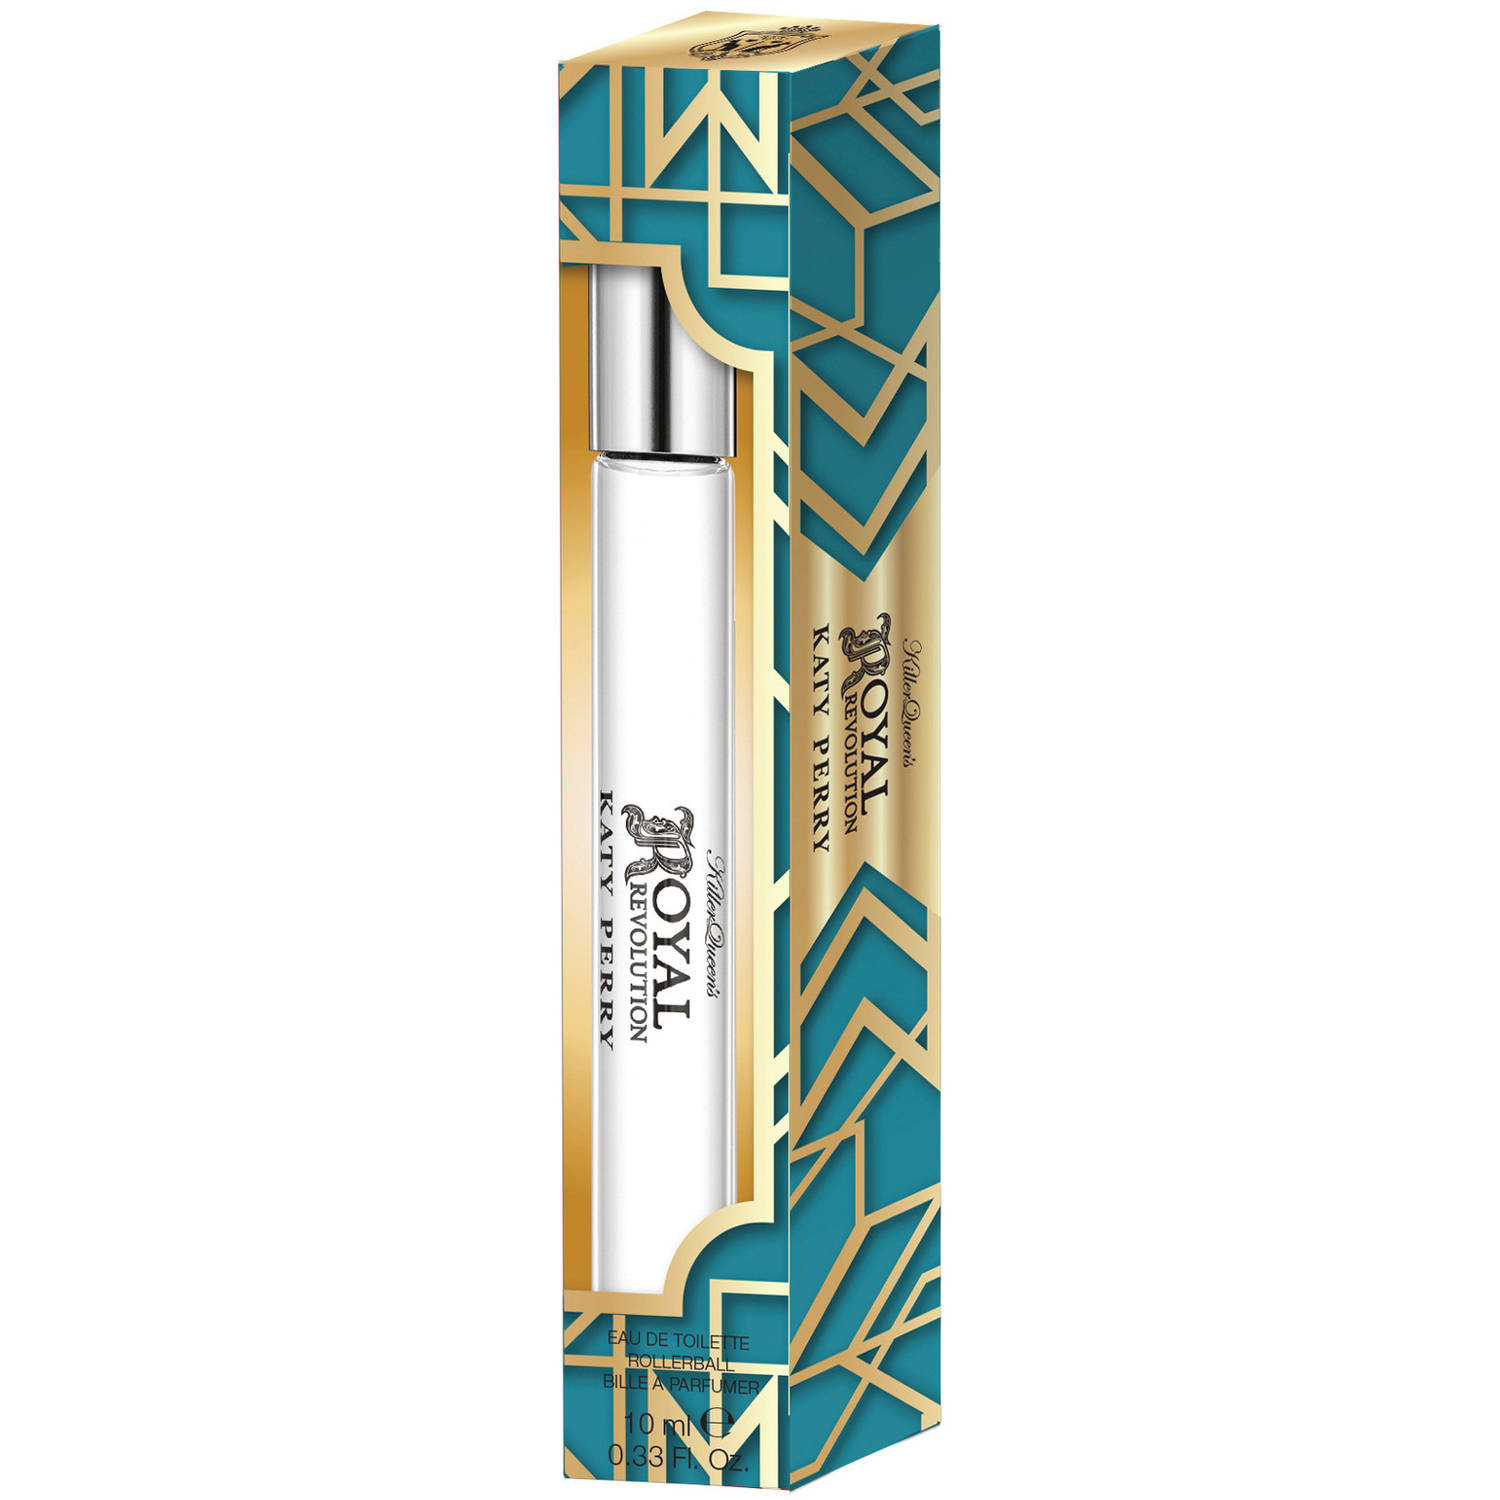 Katy Perry Royal Revolution Womens Perfume Rollerball, .33 fl oz